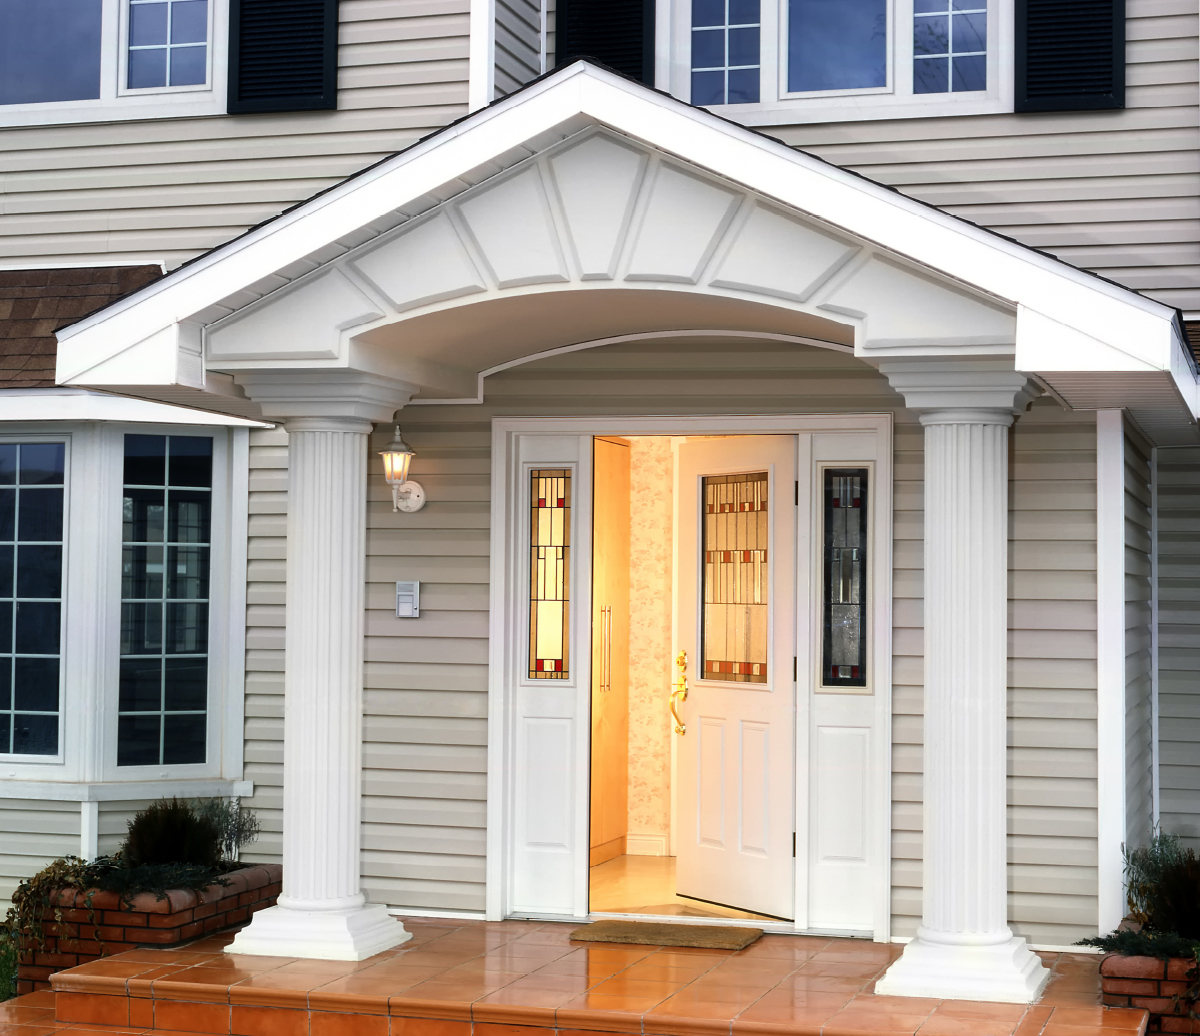 Tilt And Flip Home windows Excellent Choose For Fashionable Areas